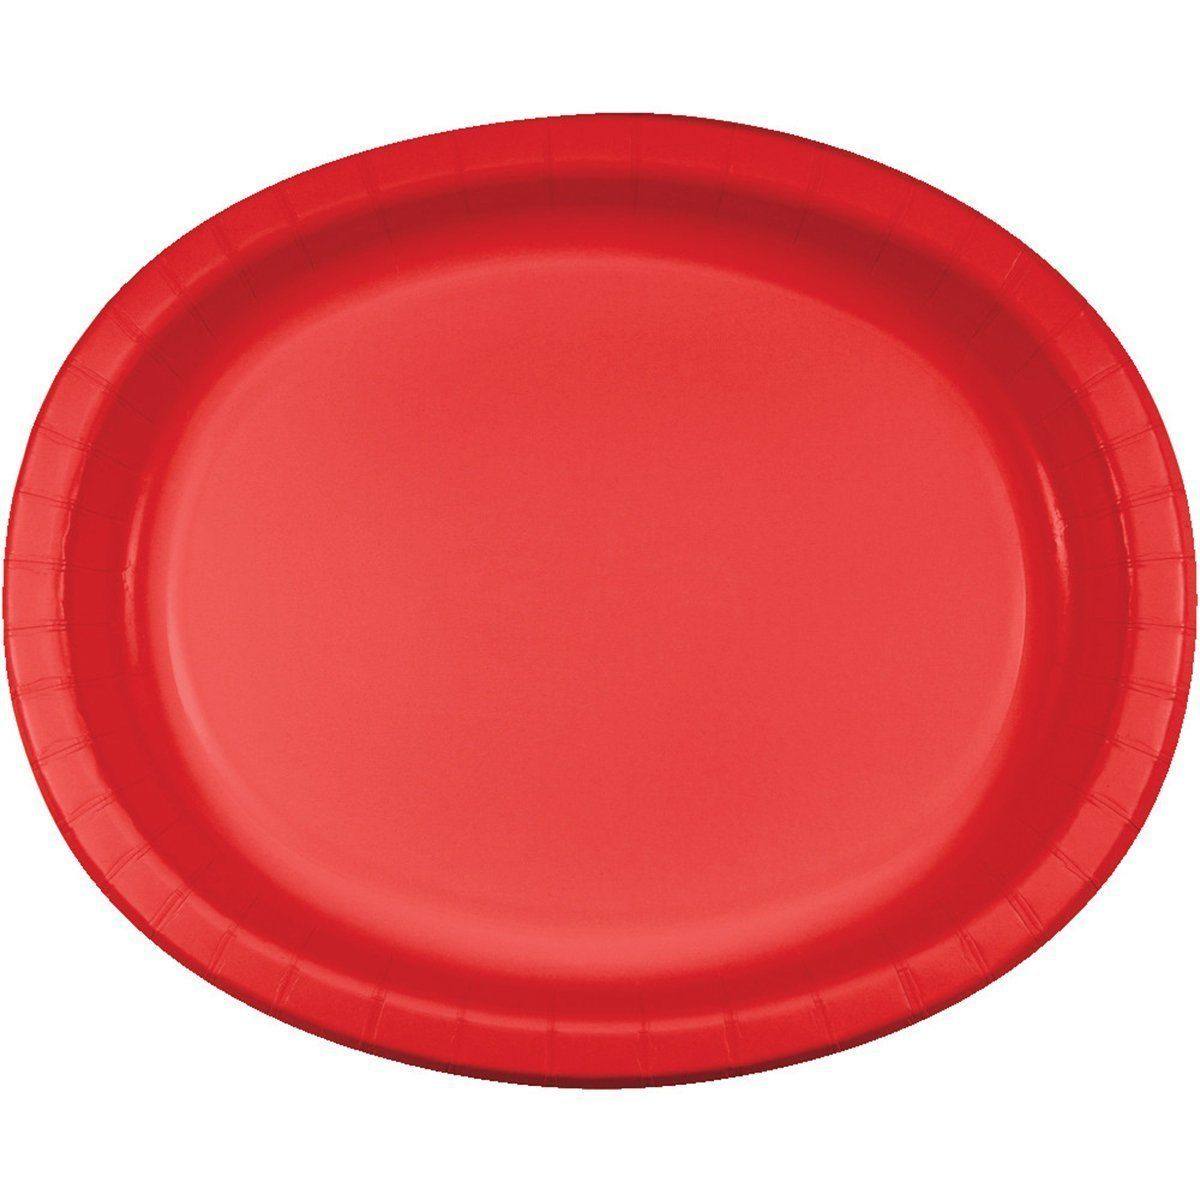 "Creative Converting 20 Count Oval Paper Platters, Classic Red 12"" x 10"""